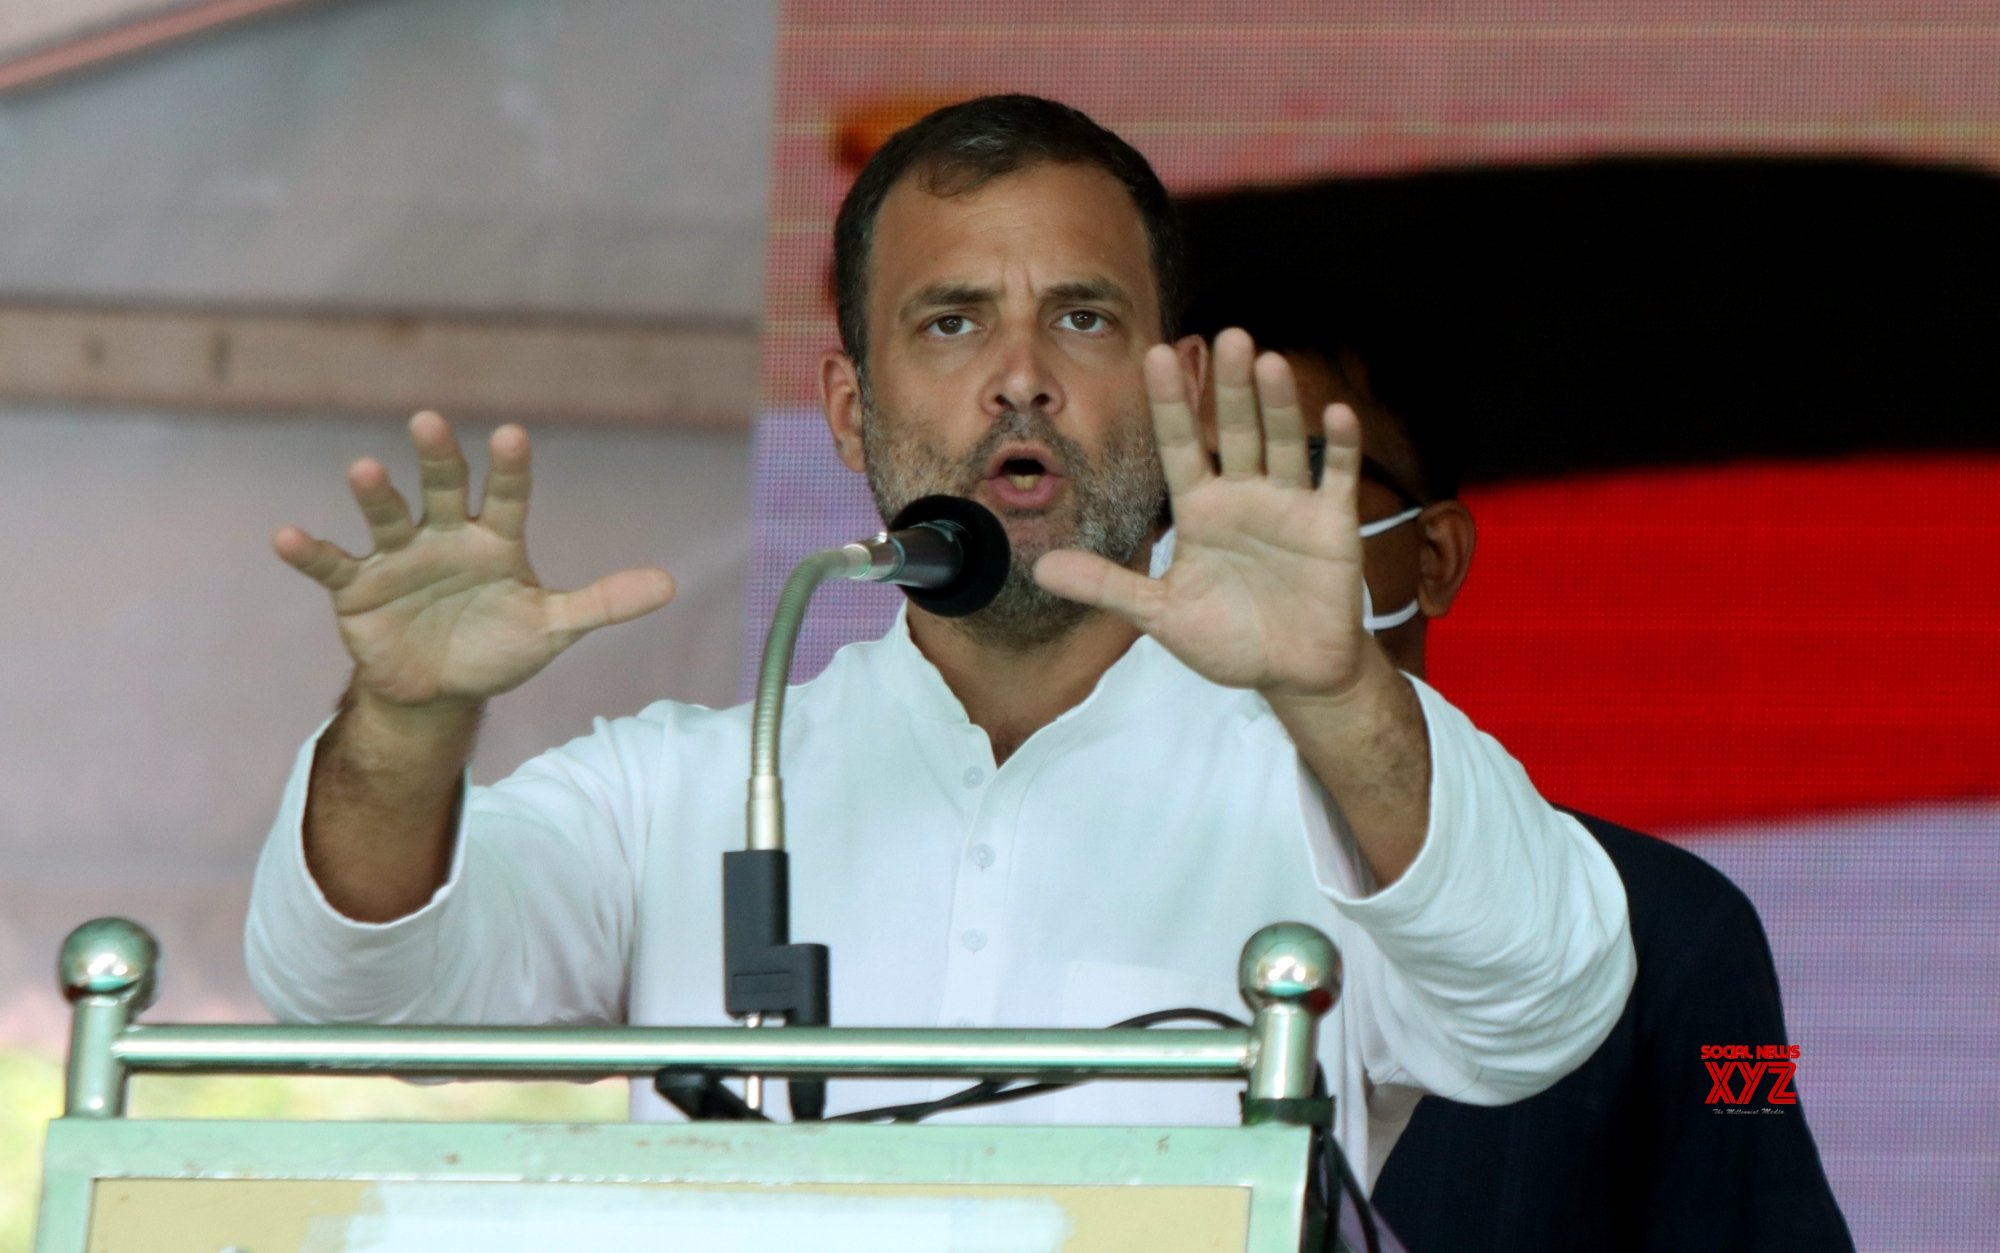 A crime has been committed against India: Rahul